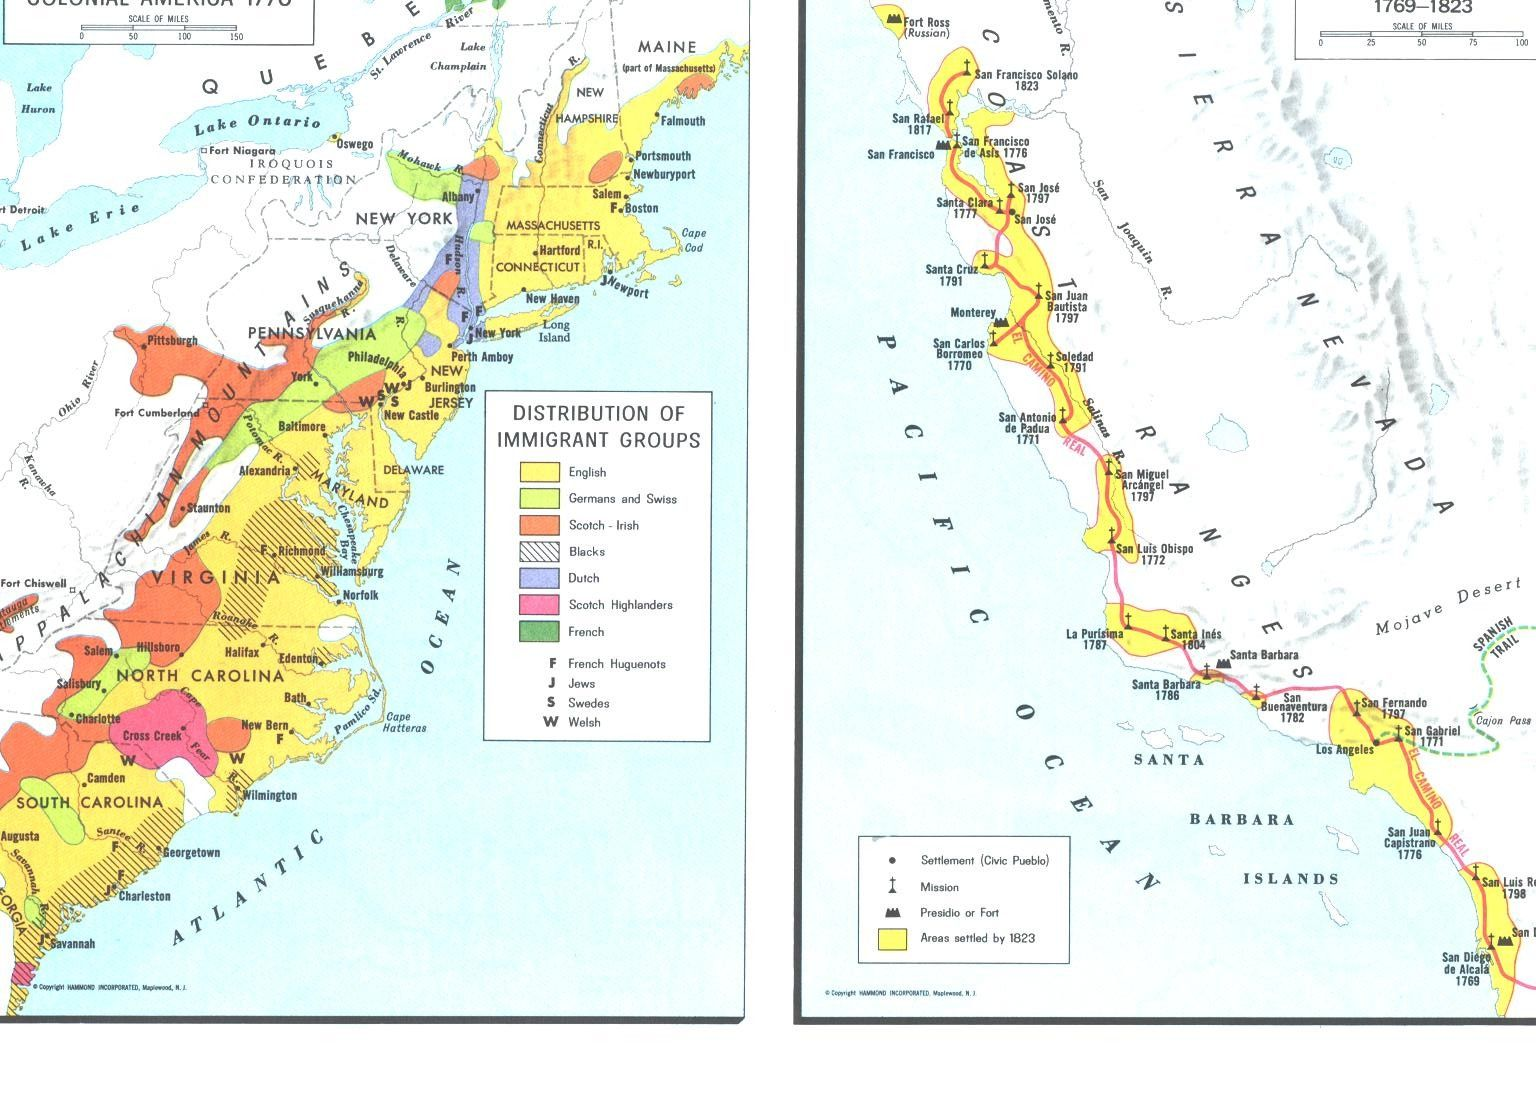 Colonial American Map.Colonial America 1770 Maps Pinterest Colonial America The